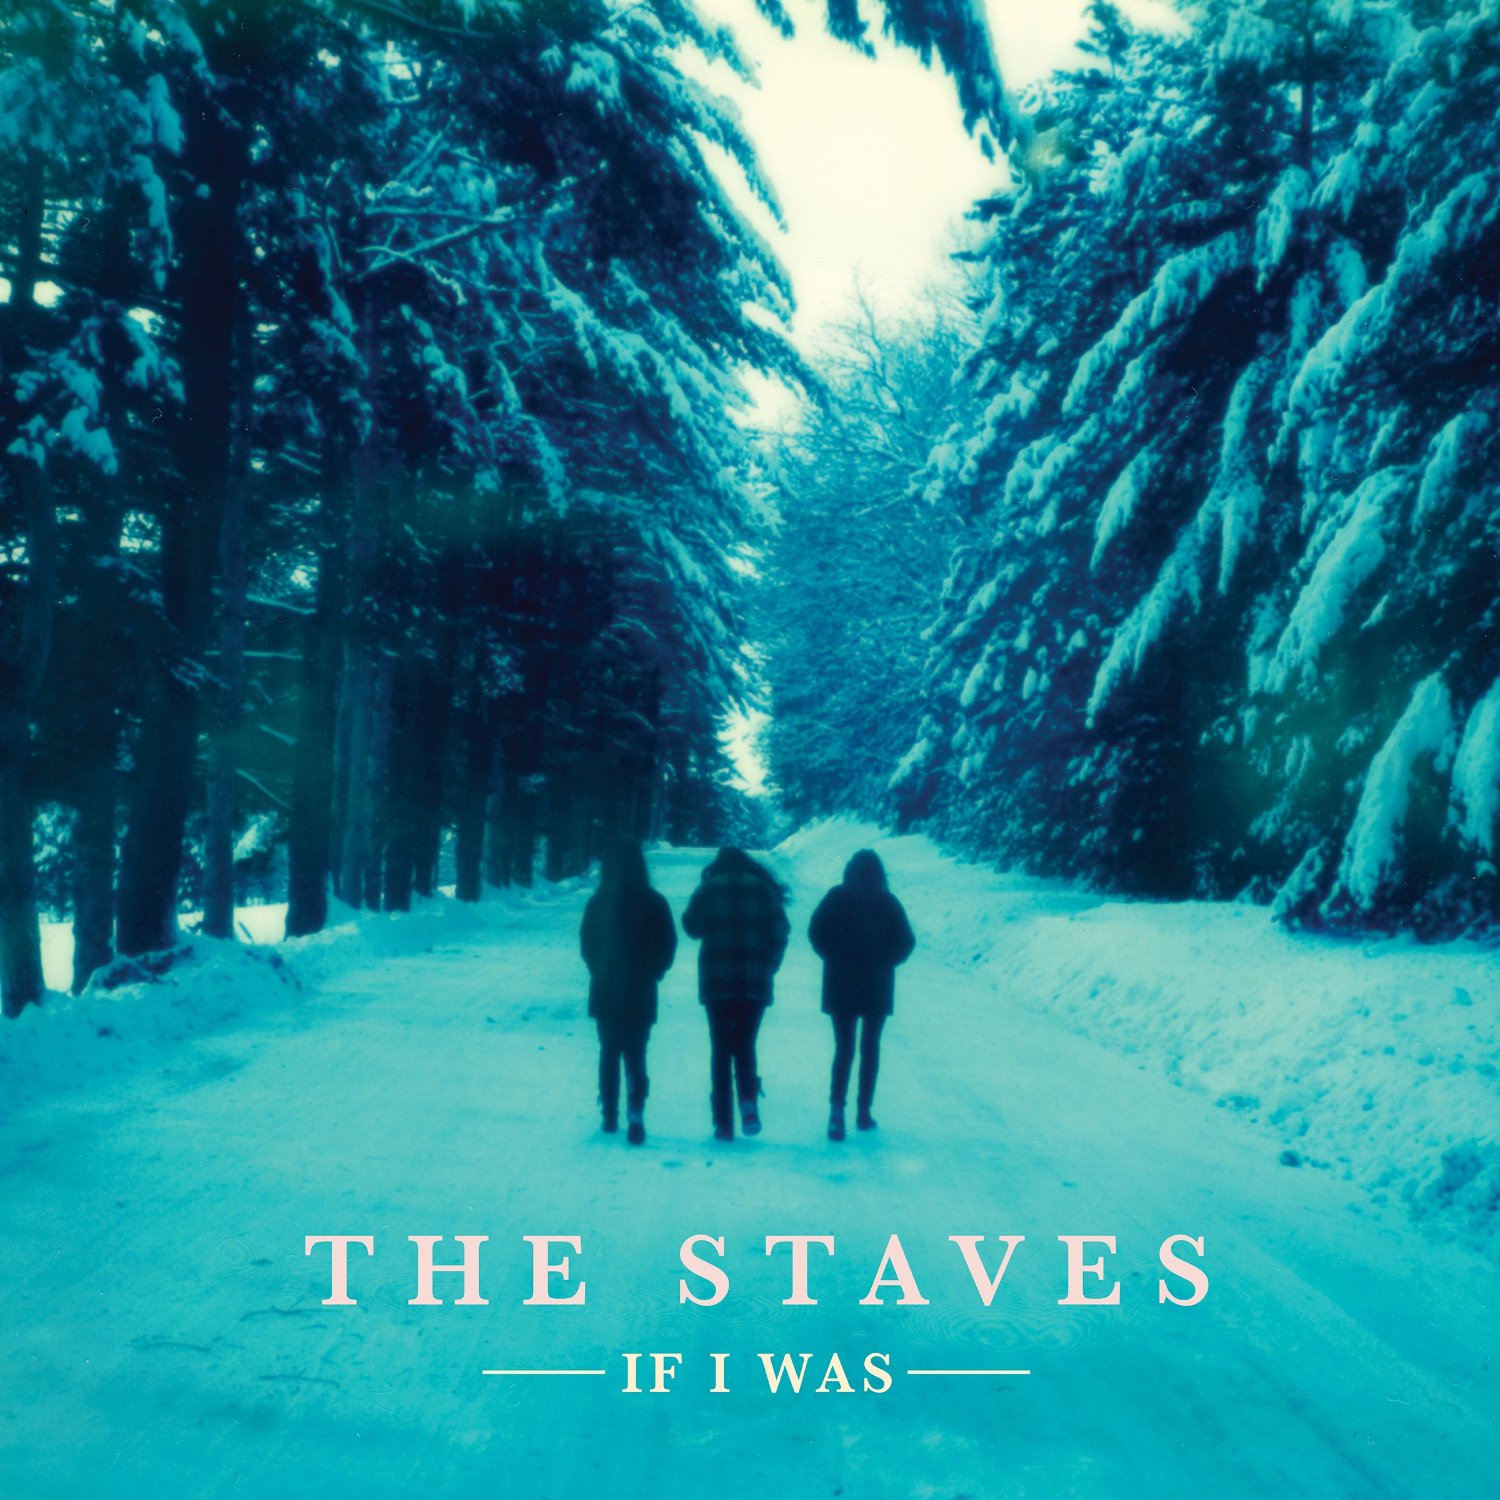 #10 - The Staves - If I Was